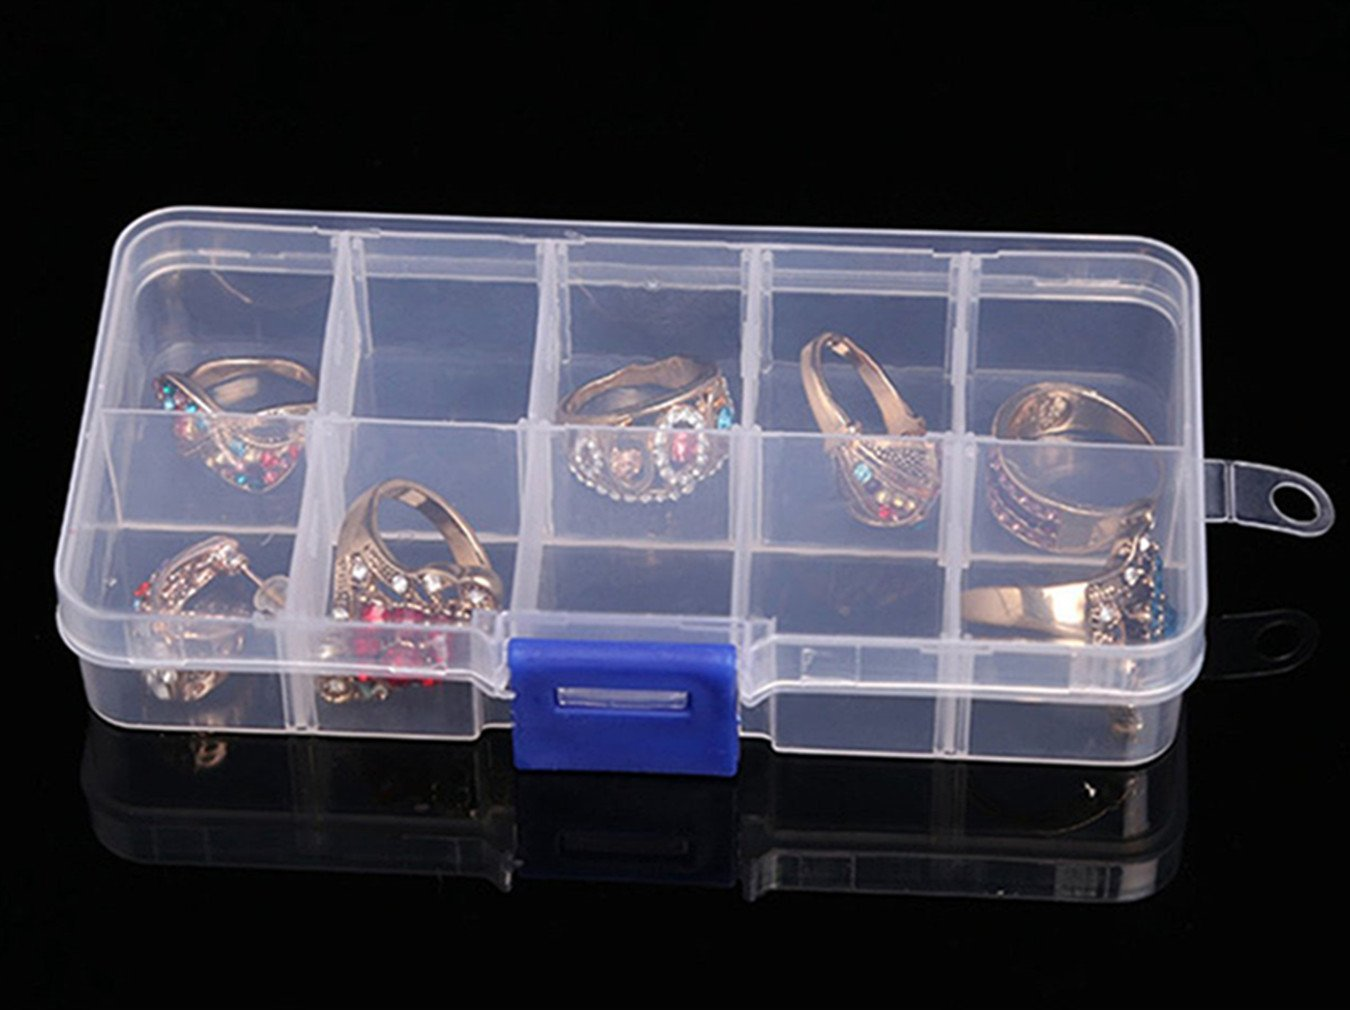 ReachTop Jewelry Box Organizer Storage Container with Adjustable Dividers 8 Pack 10 Grids Clear Bead Organizer Plastic Jewelry Storage Containers for Women